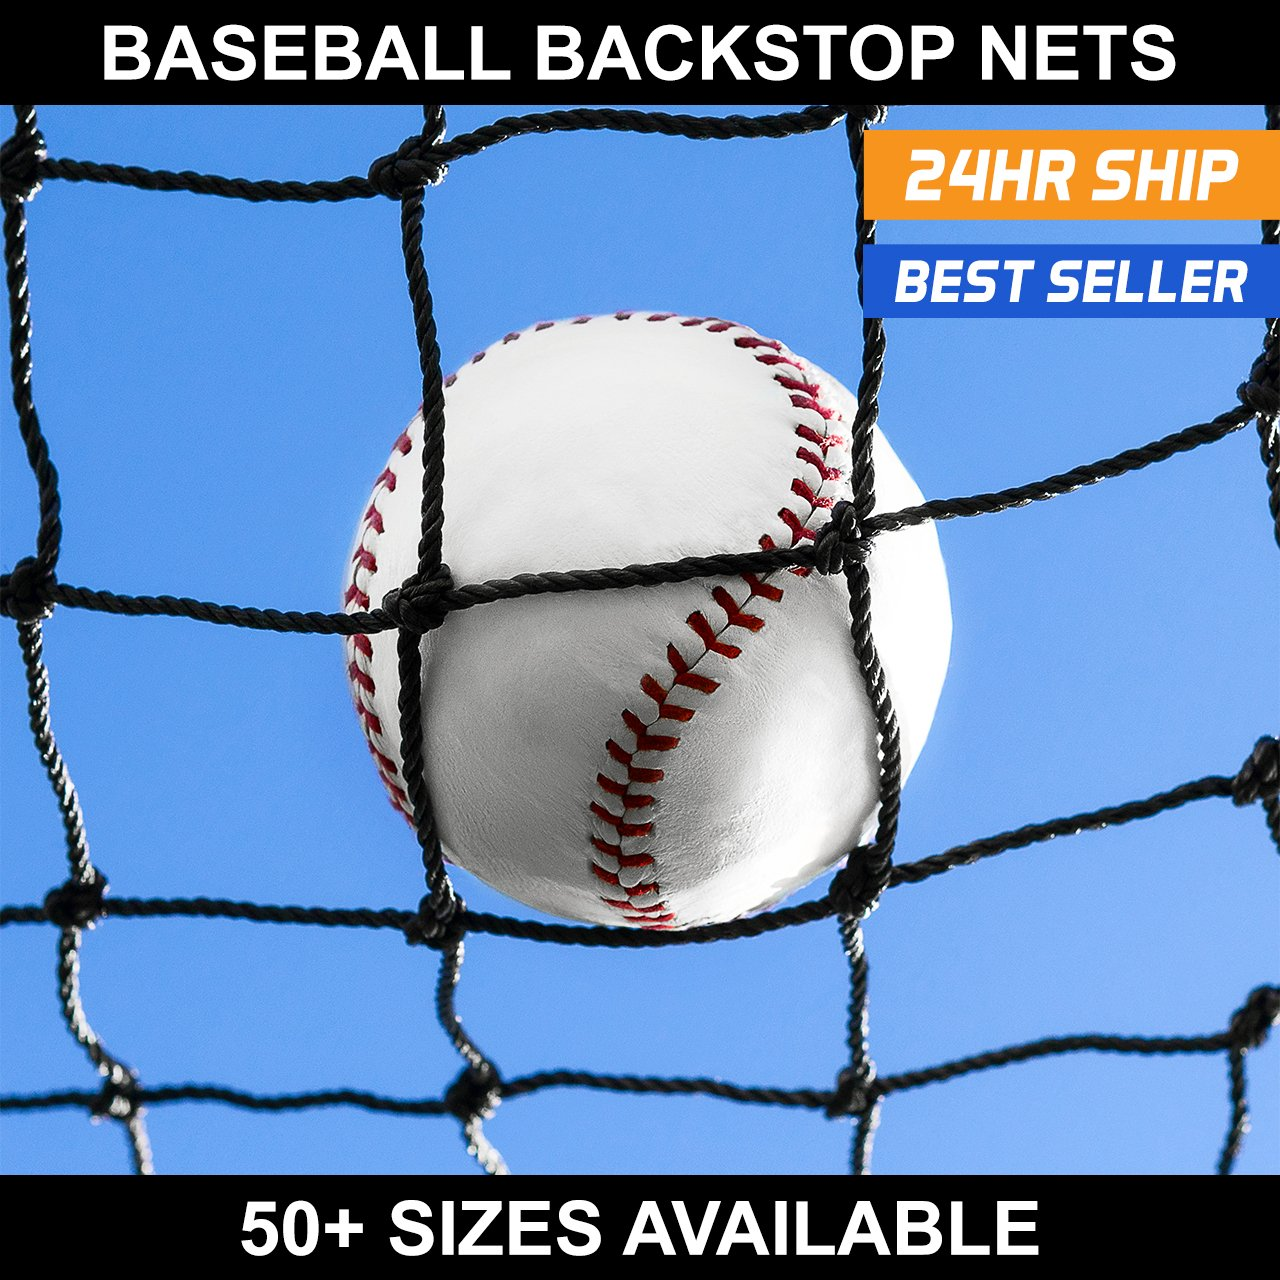 Net World Sports Baseball Backstop Nets - 50 (36. 50' x 100') by Net World Sports